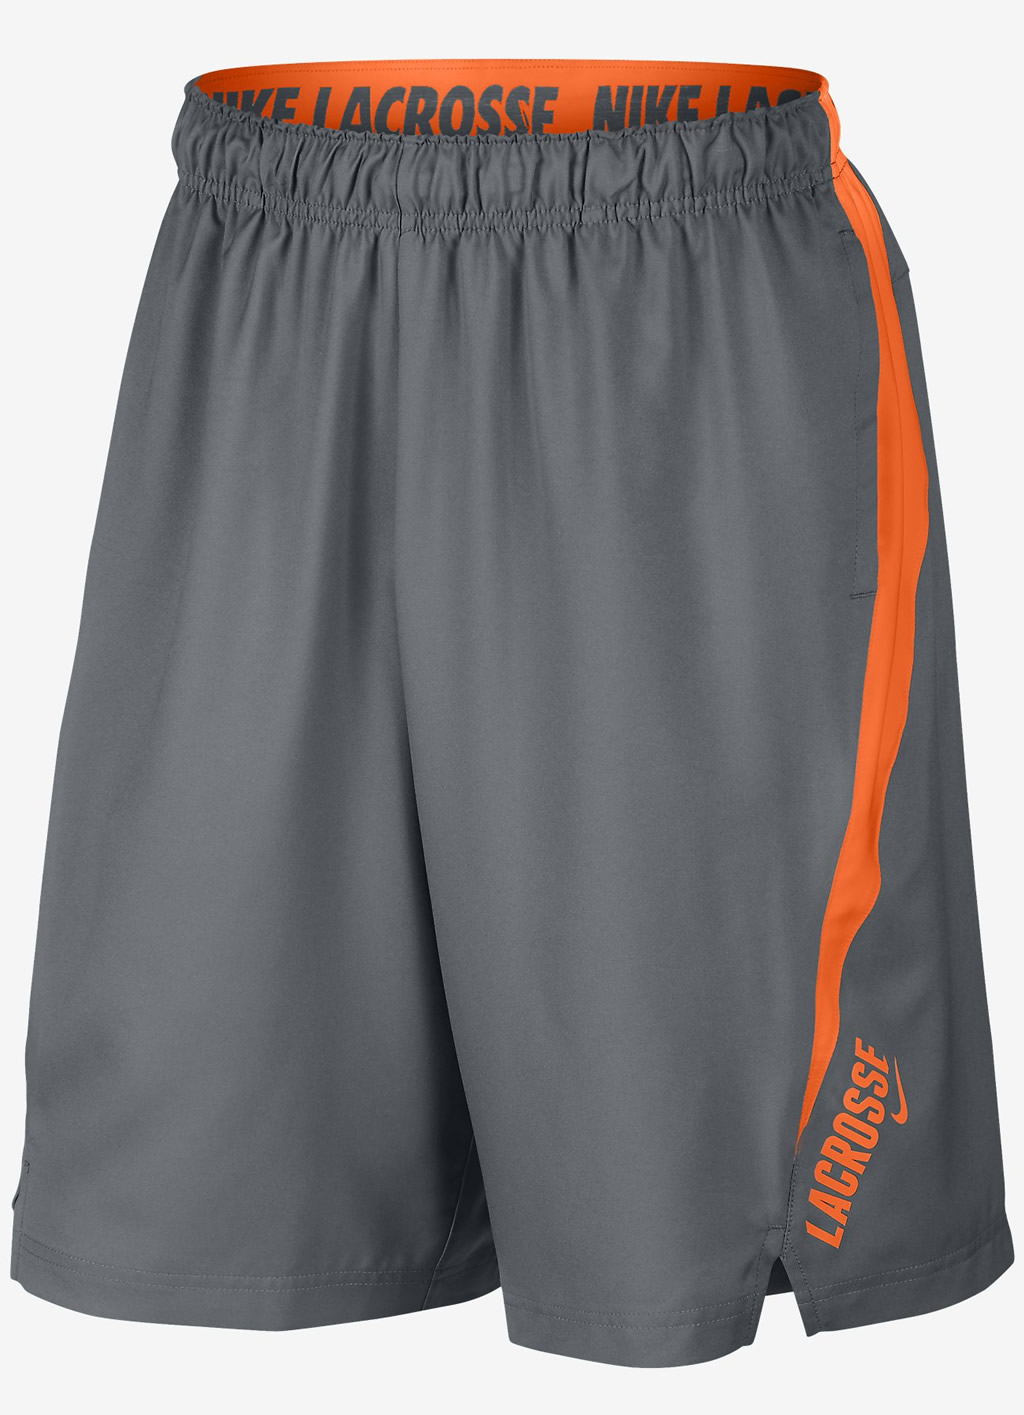 Nike Lacrosse Woven Men's Training Shorts